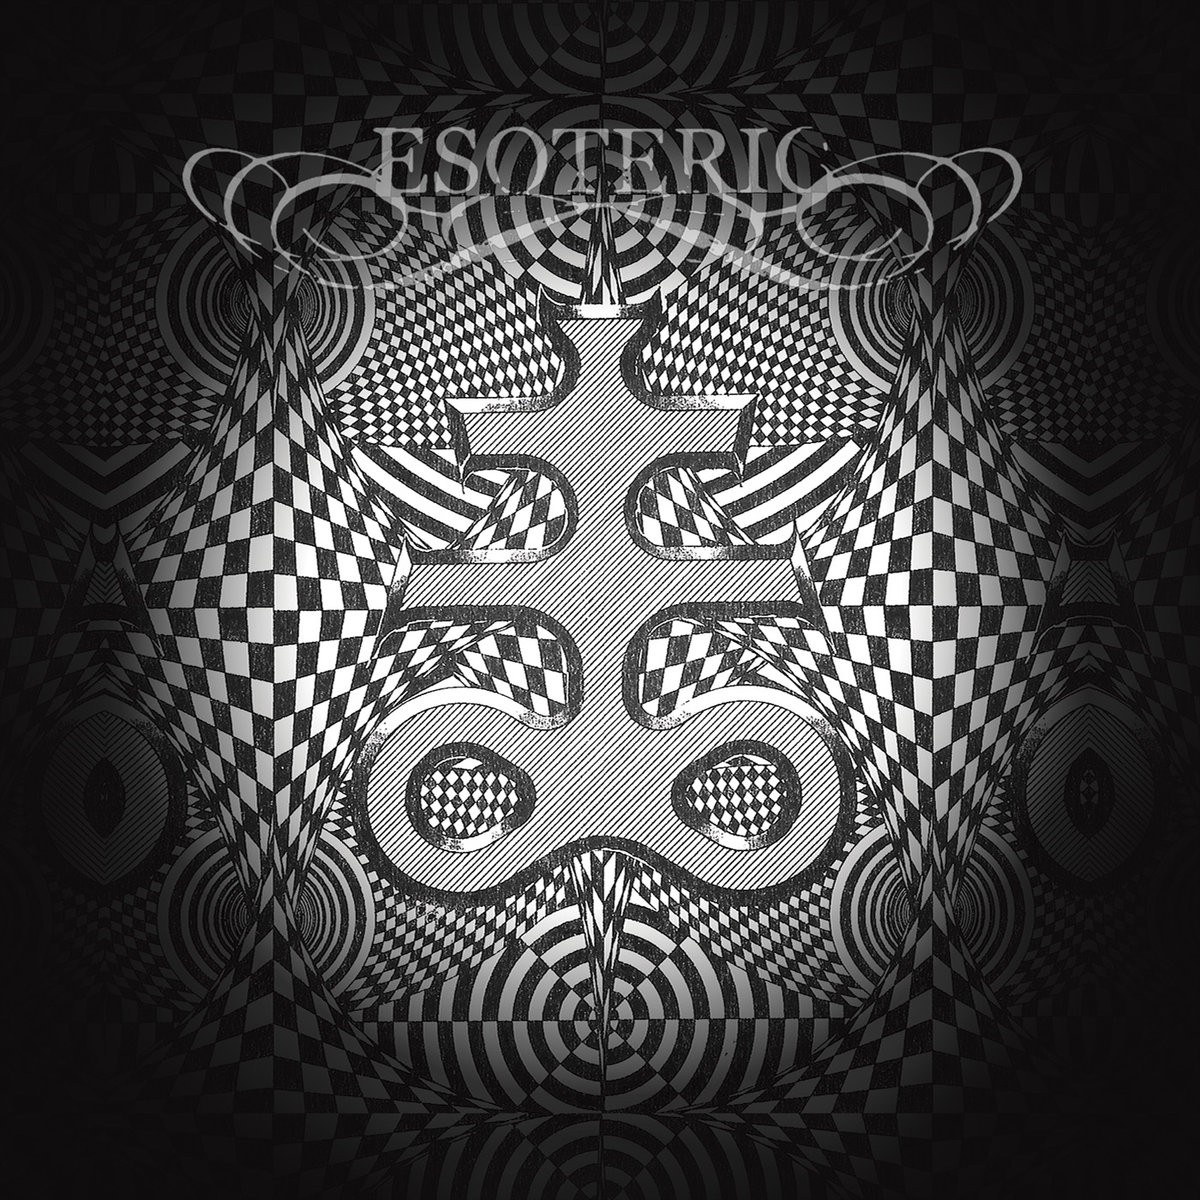 Esoteric - Esoteric Emotions - The Death Of Ignorance - 2017